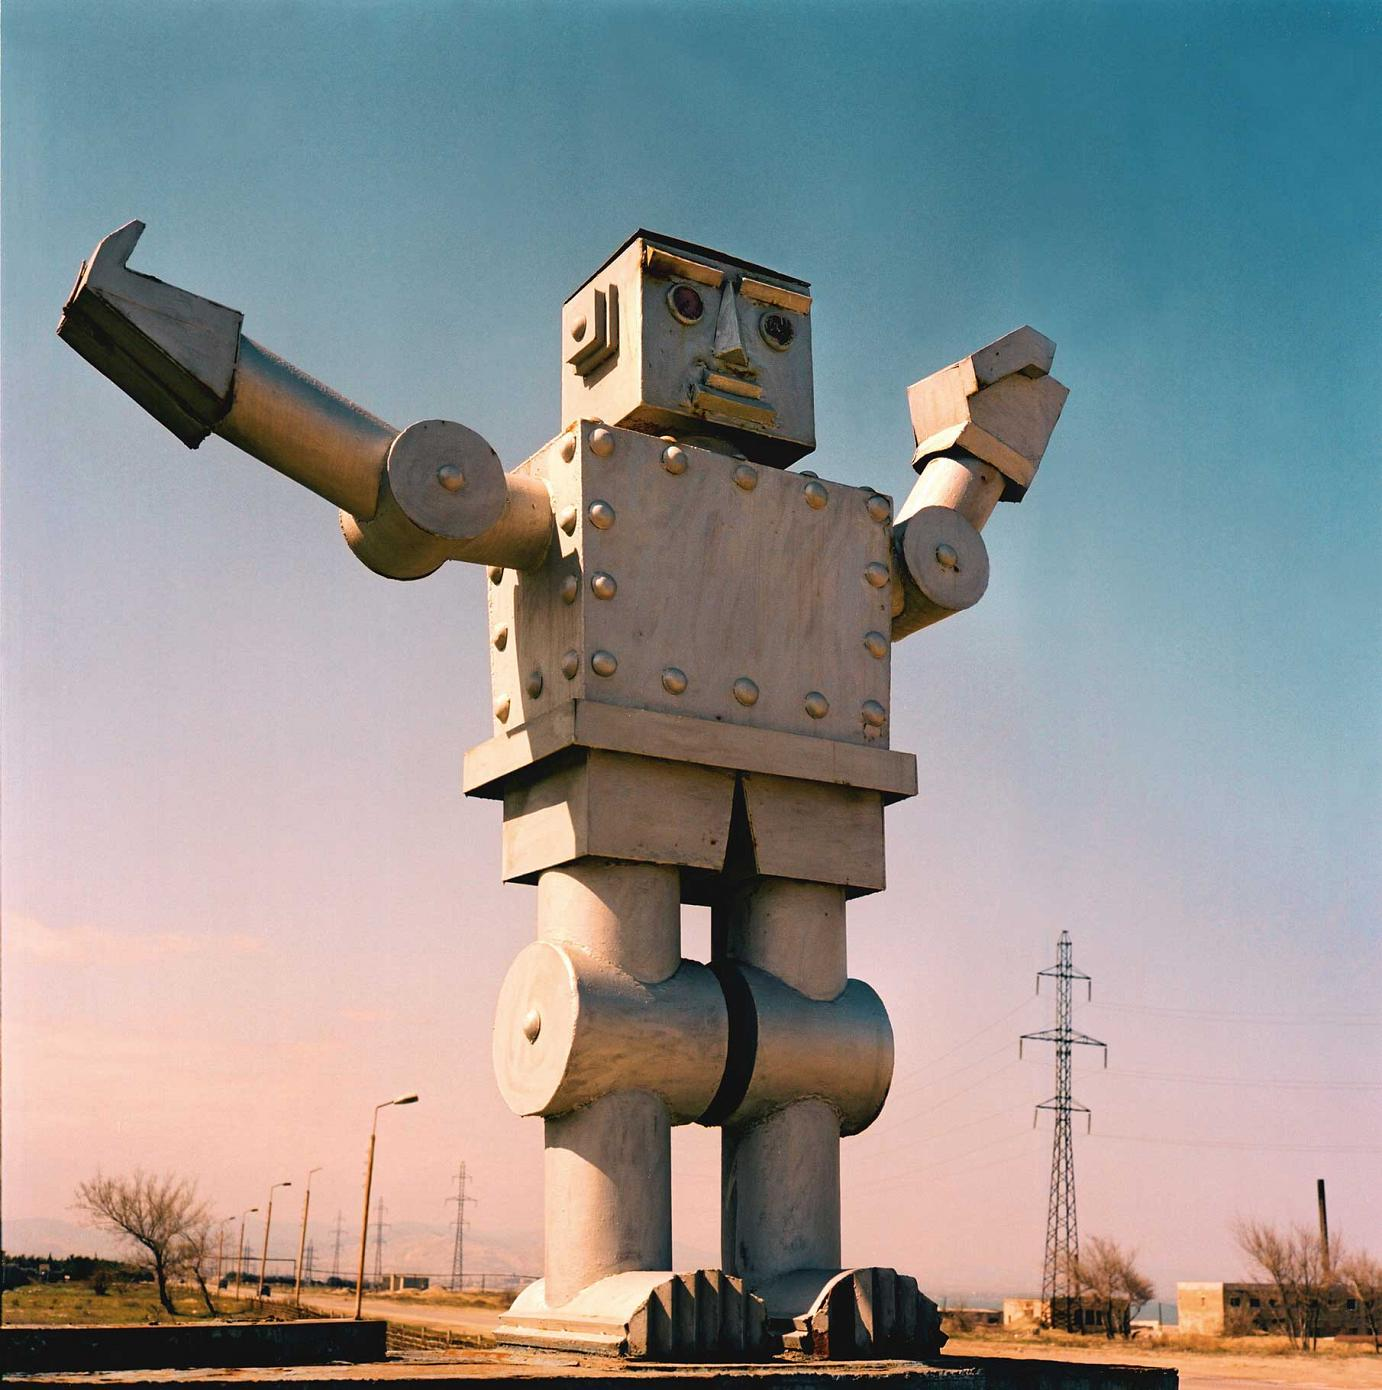 Rena Effendi »Robot in front of Sumgayit's Soviet machinery plant« Photographie